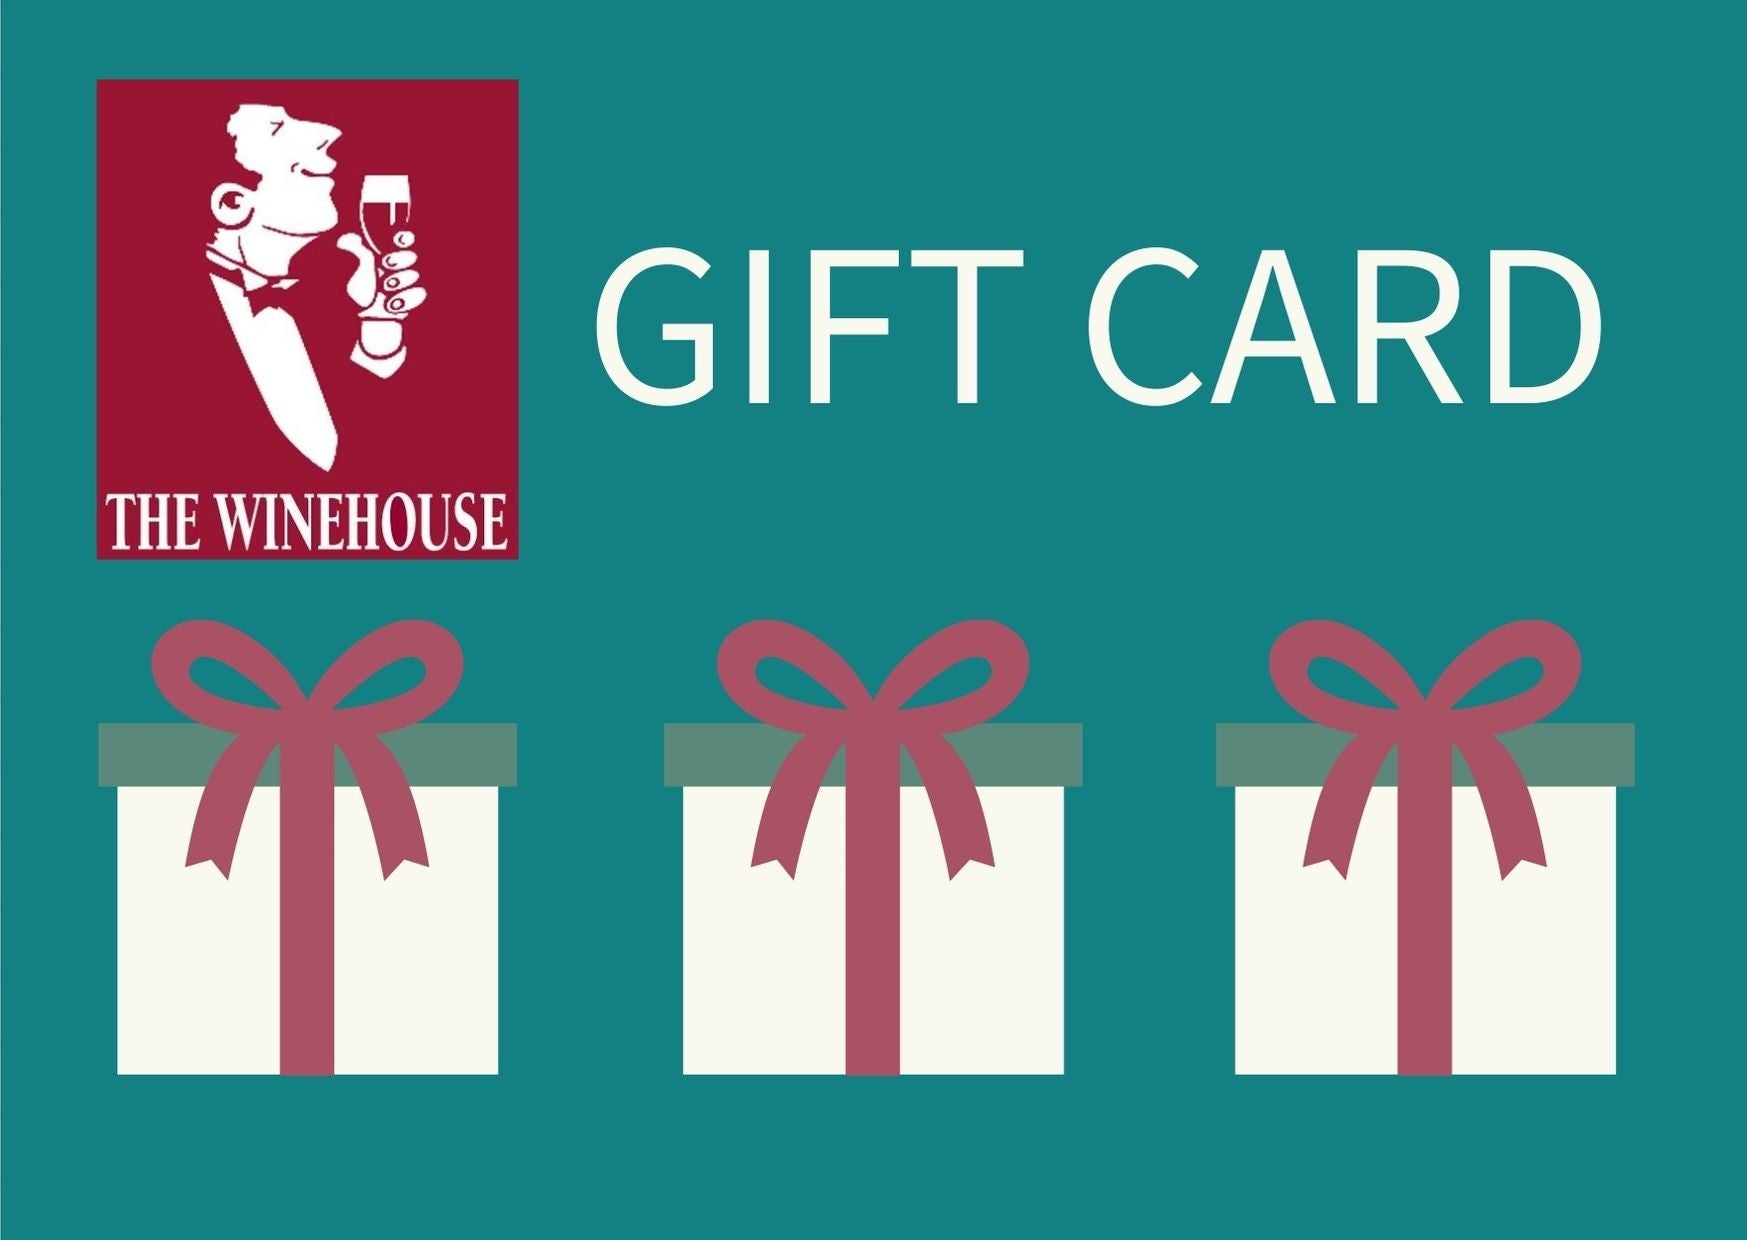 THE WINEHOUSE GIFT CARDS. AVAILABLE VALUES FROM €25 TO €200.